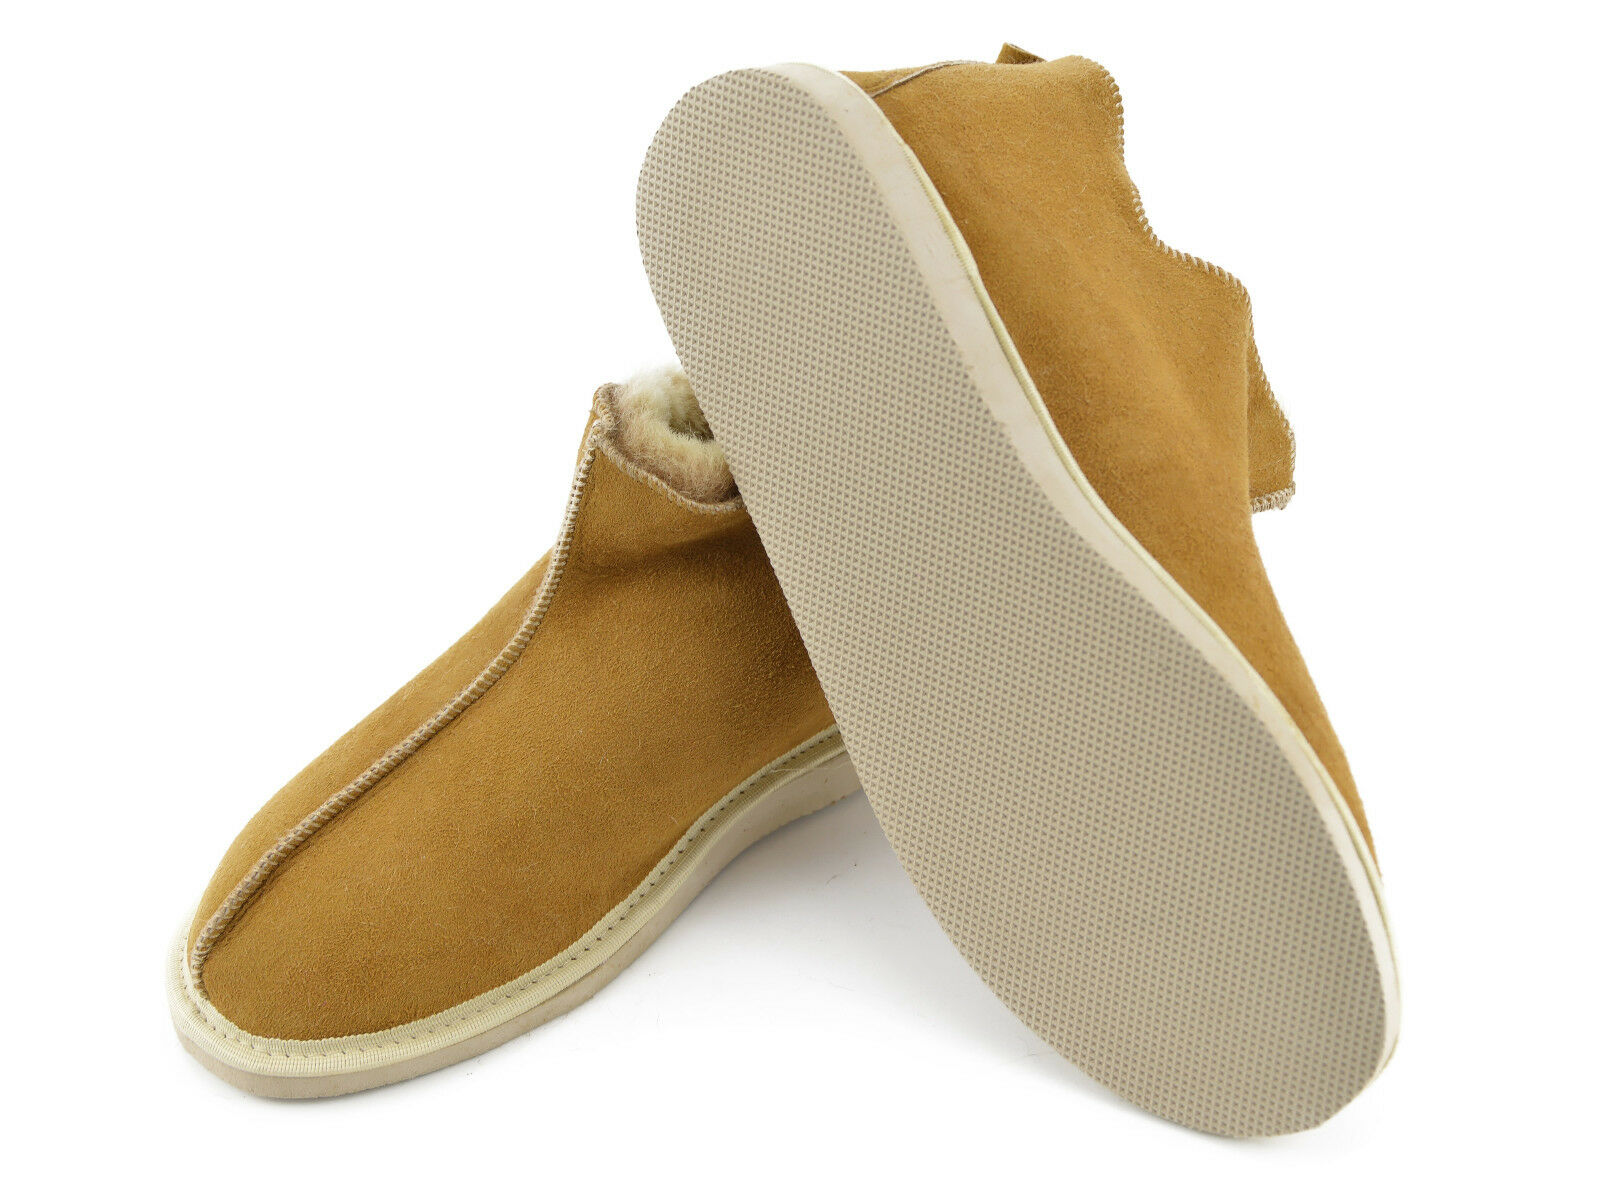 Sheepskin Slipper House Schuhes for Moccasin with sole,100% natural for Schuhes Men and Damens 96c436